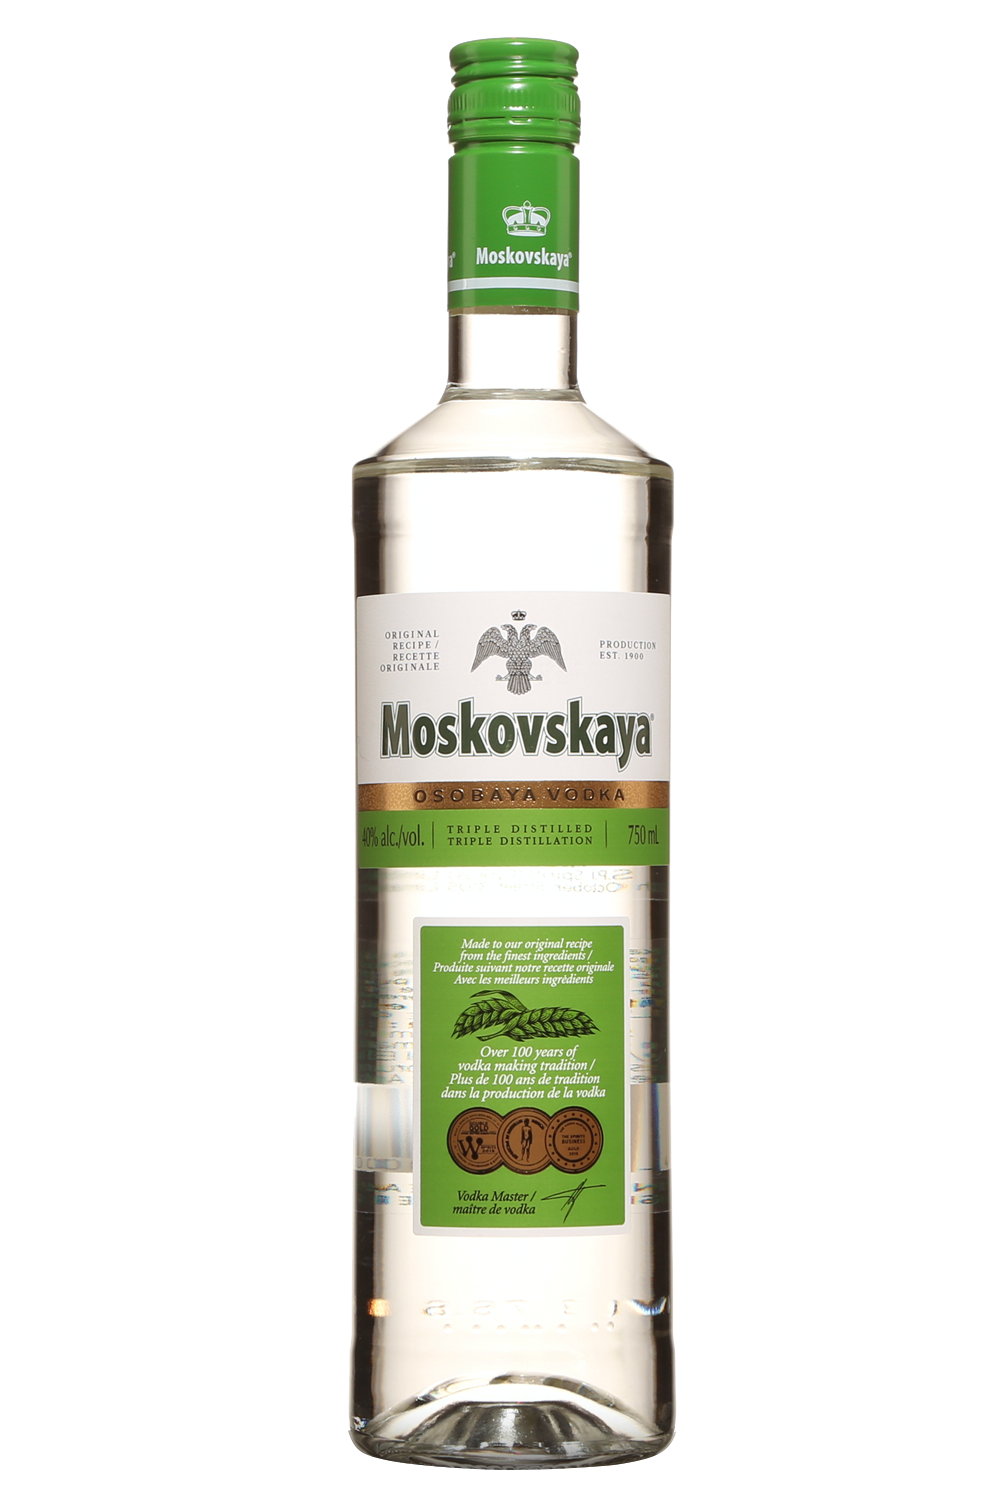 Moskovskaya vodka 0.70 cl